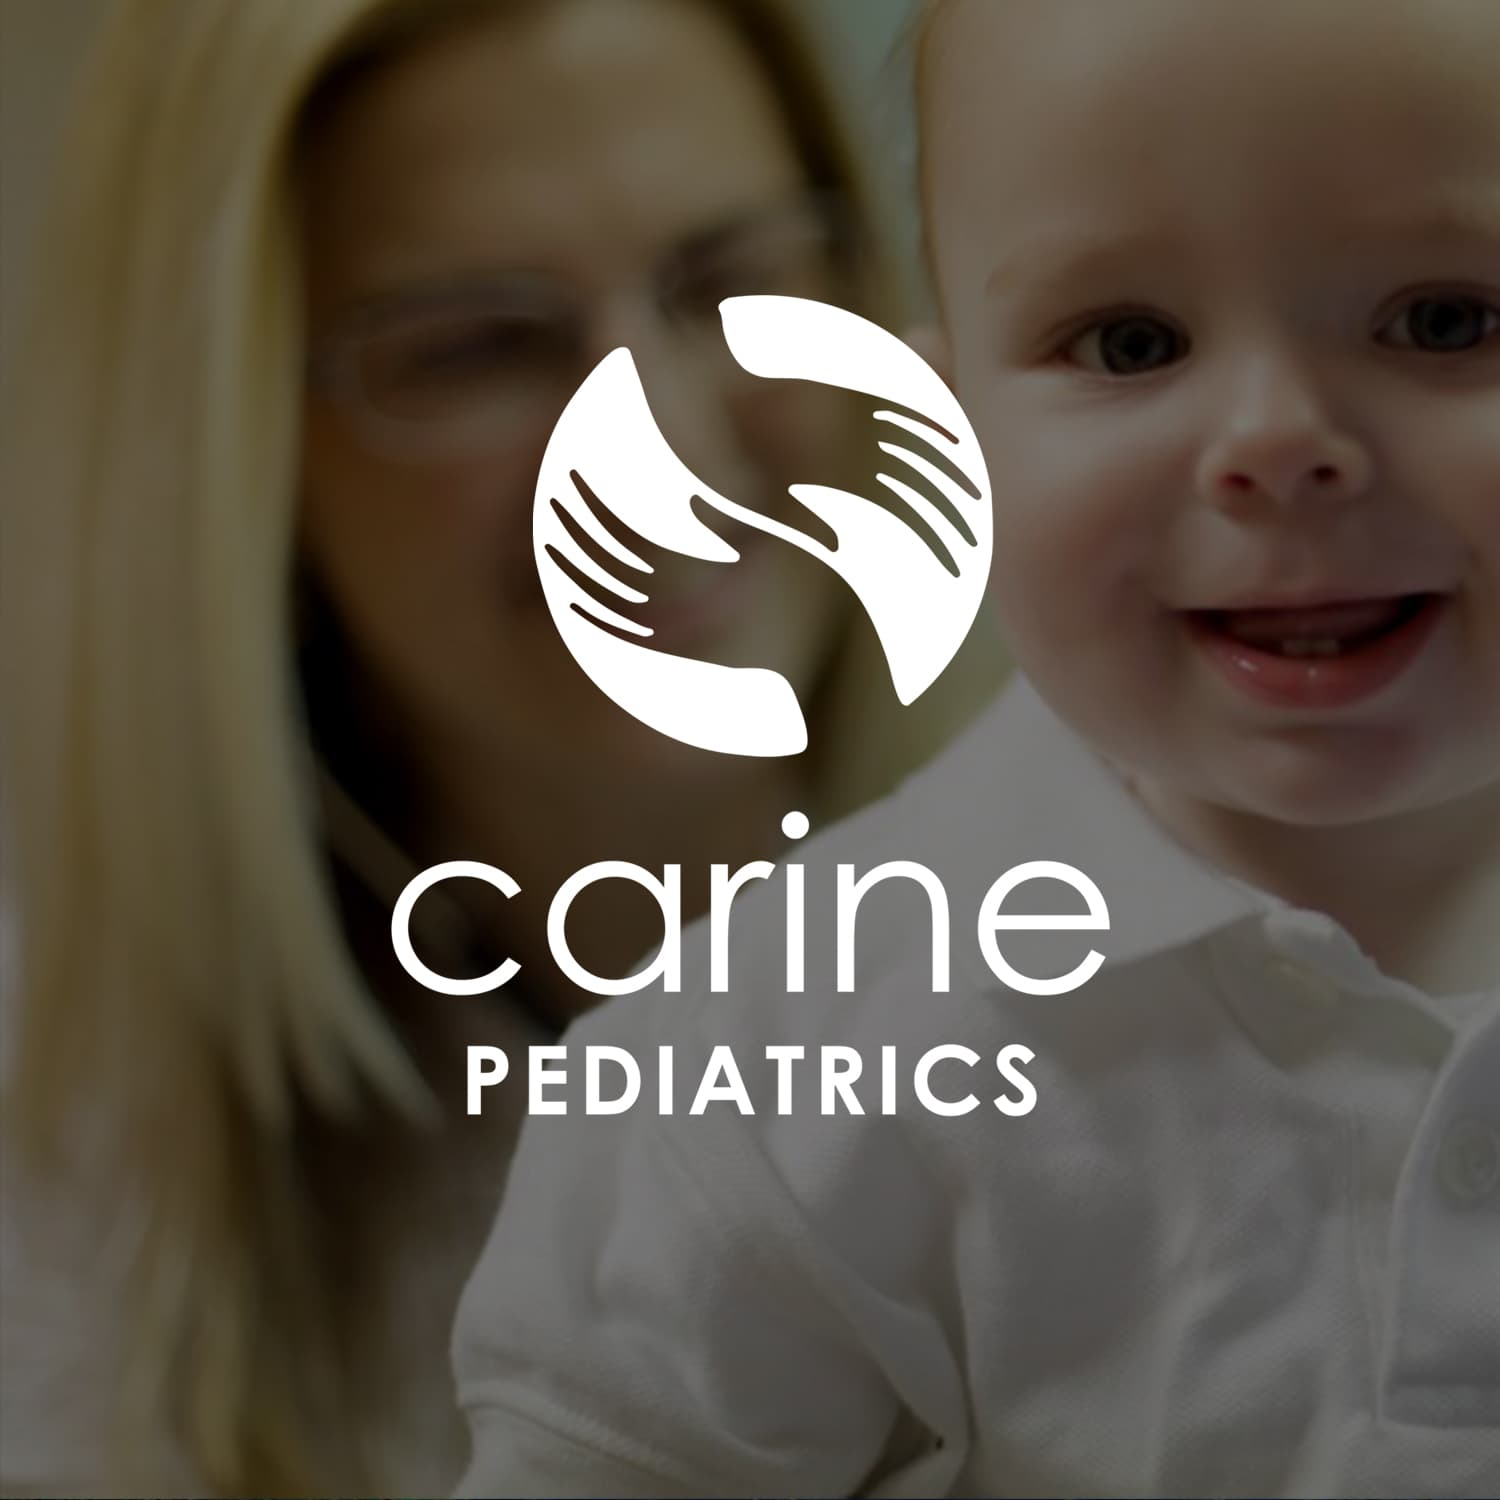 Carine Pediatrics Logo Display.jpg